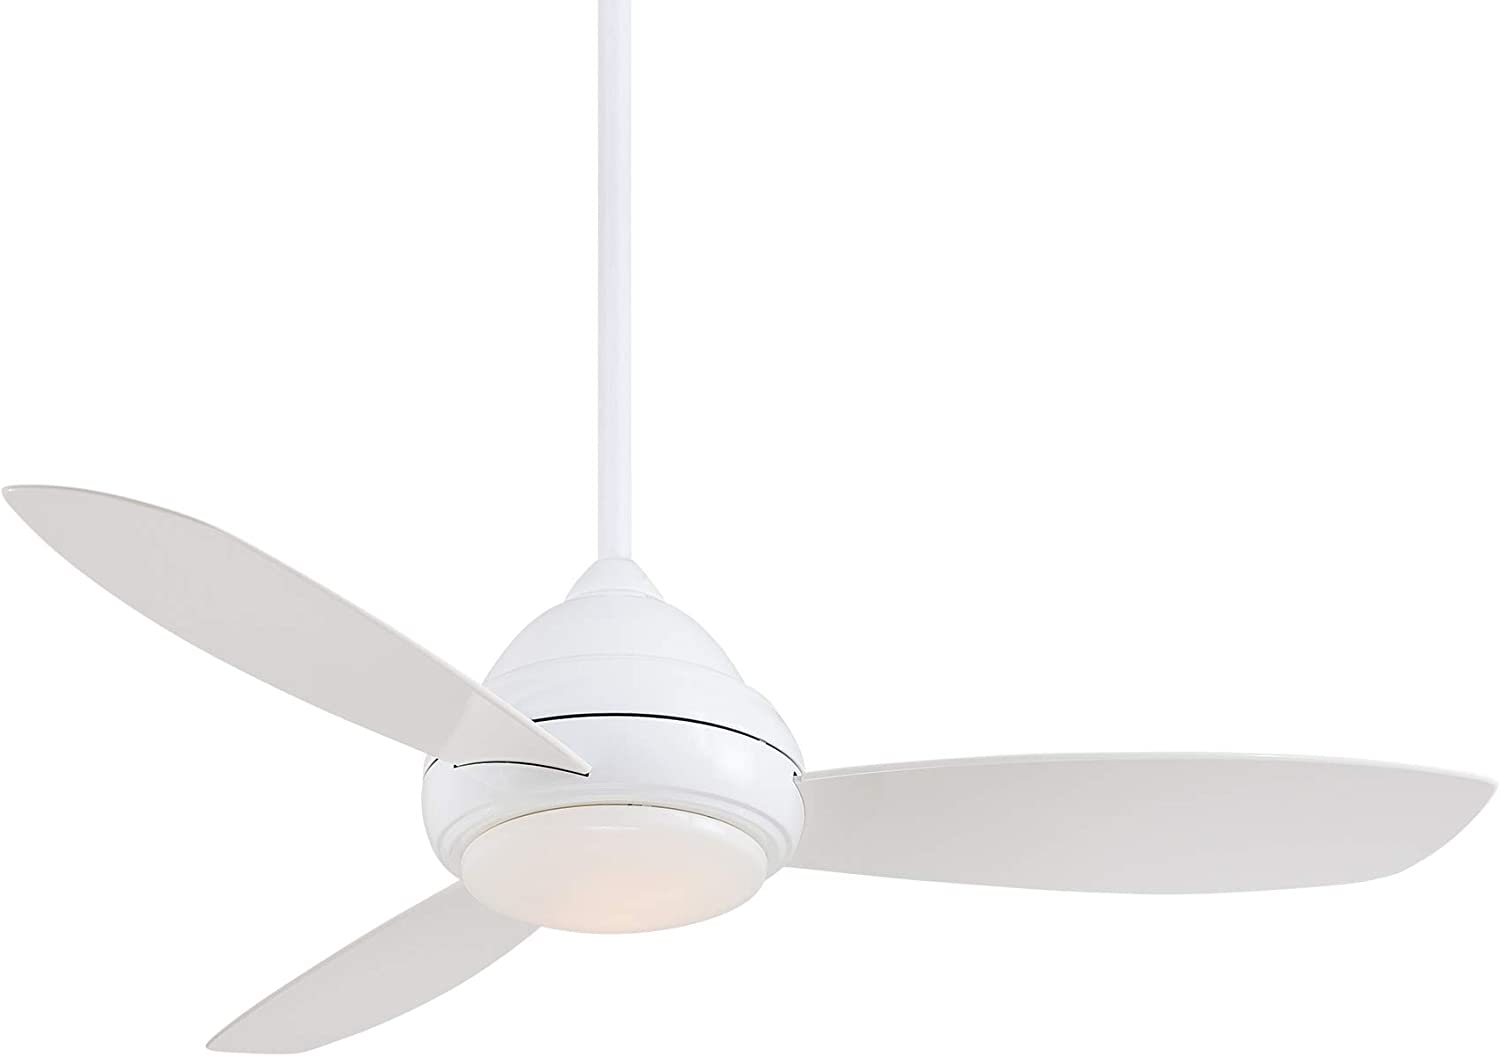 Minka-Aire F517L-WH Concept I 52 Inch Ceiling Fan with Integrated 14W LED Light in White Finish